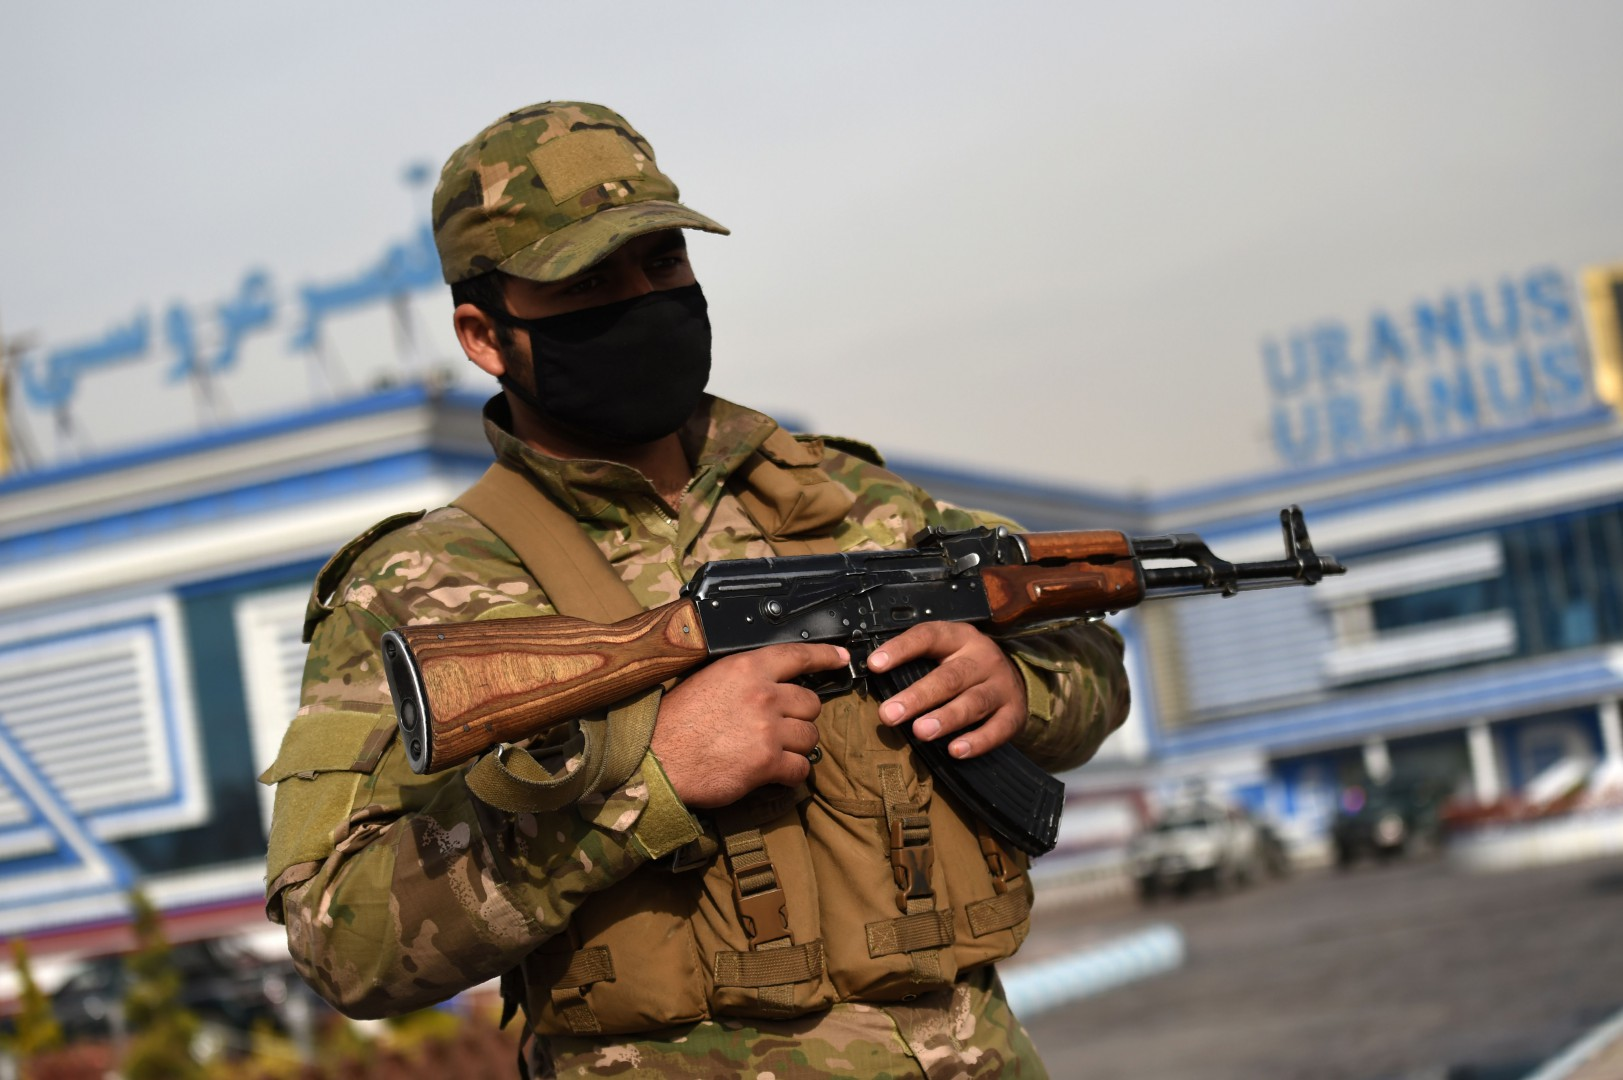 A member of the Afghan security forces stands guard outside of a wedding hall a day after a deadly suicide attack in Kabul on November 21, 2018. - At least 50 people were killed in a suicide attack on a religious celebration in Kabul on on November 20, officials said, in one of the deadliest assaults to strike Afghanistan this year. (Photo by WAKIL KOHSAR / AFP)